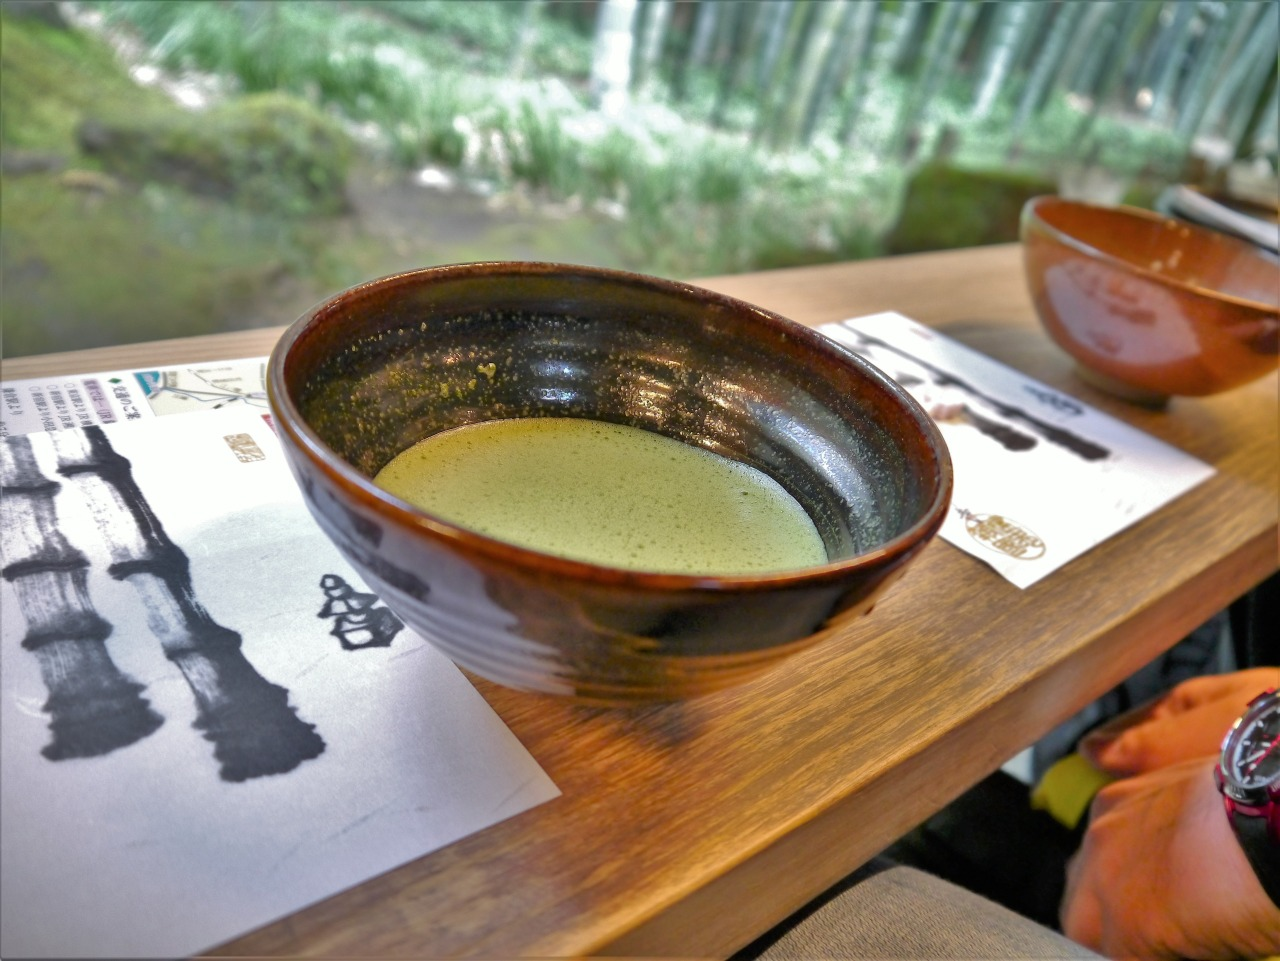 Enjoying a tea ceremony at Hokokuji Temple while viewing bamboo trees